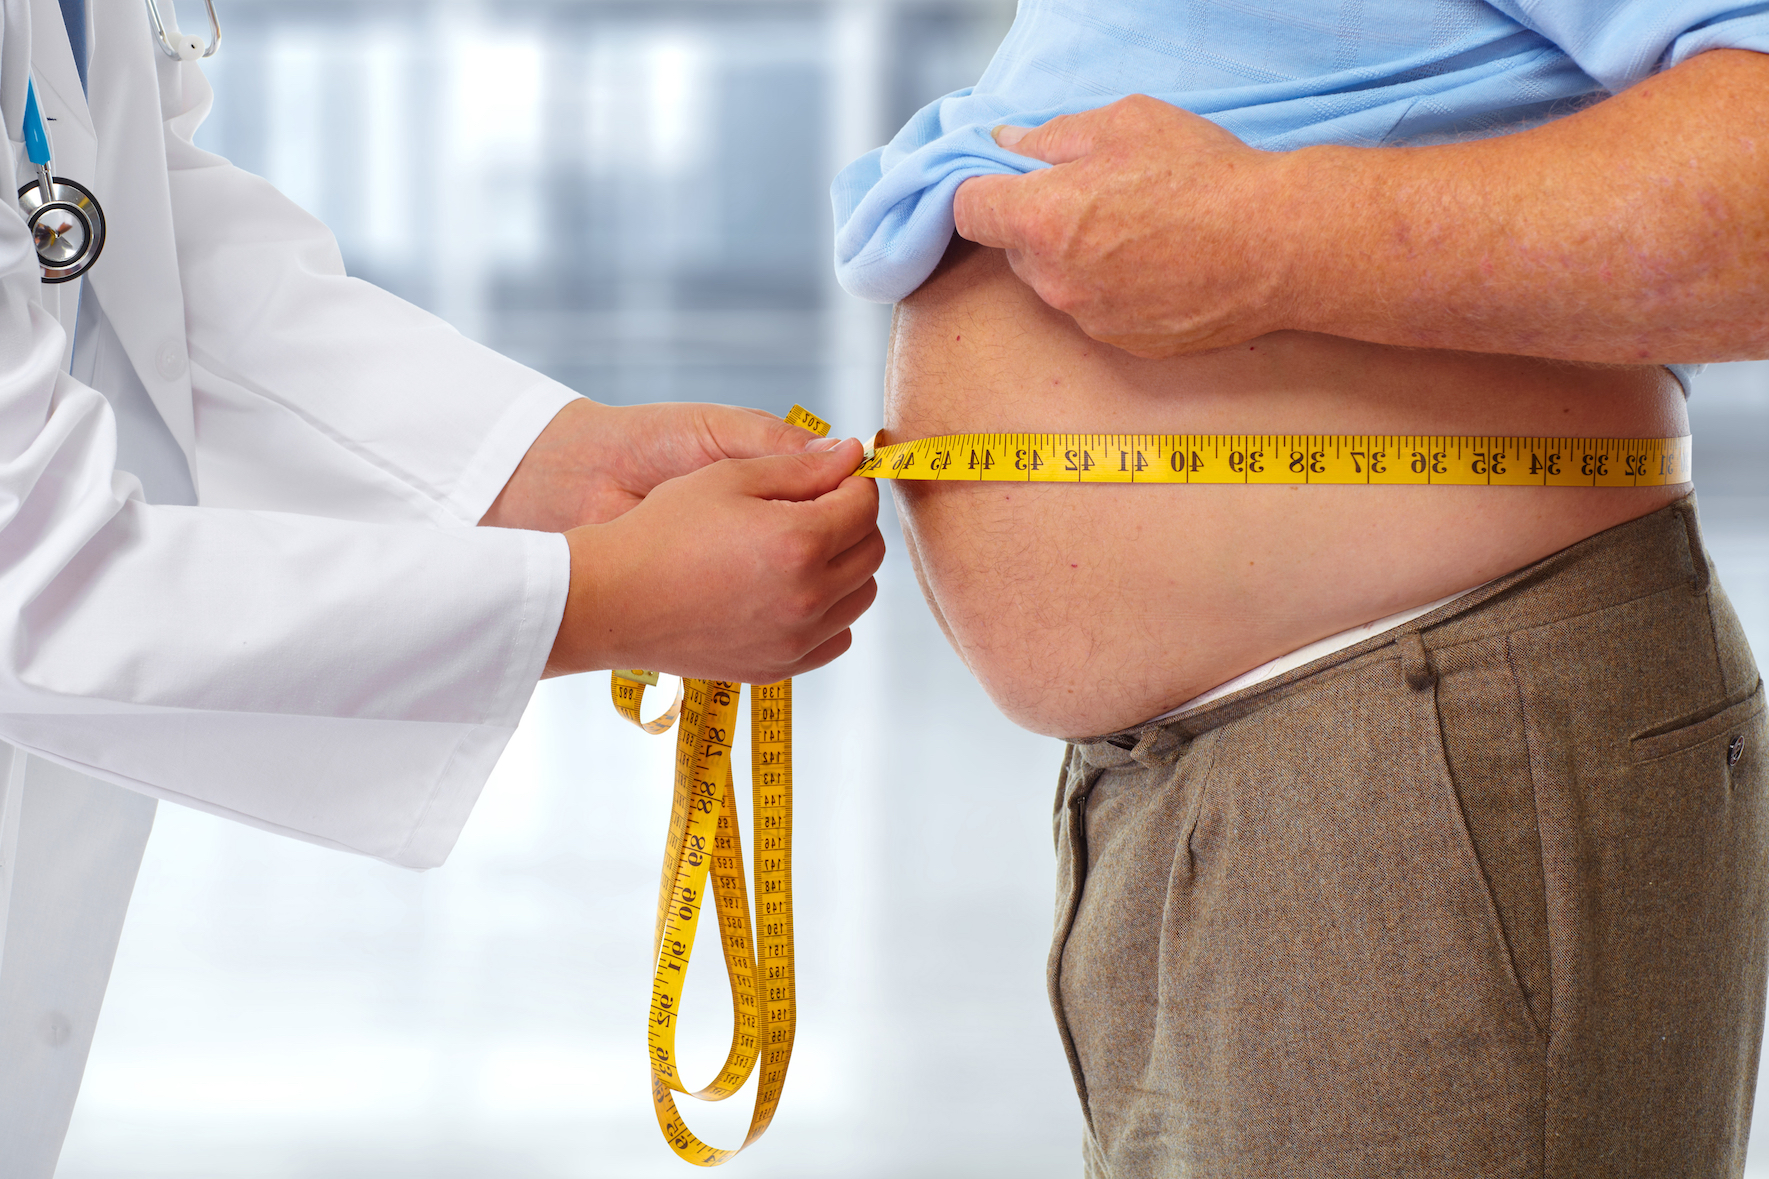 The concept of healthy obesity was first used in the 1980's to describe individuals who were deemed healthy despite being overweight.